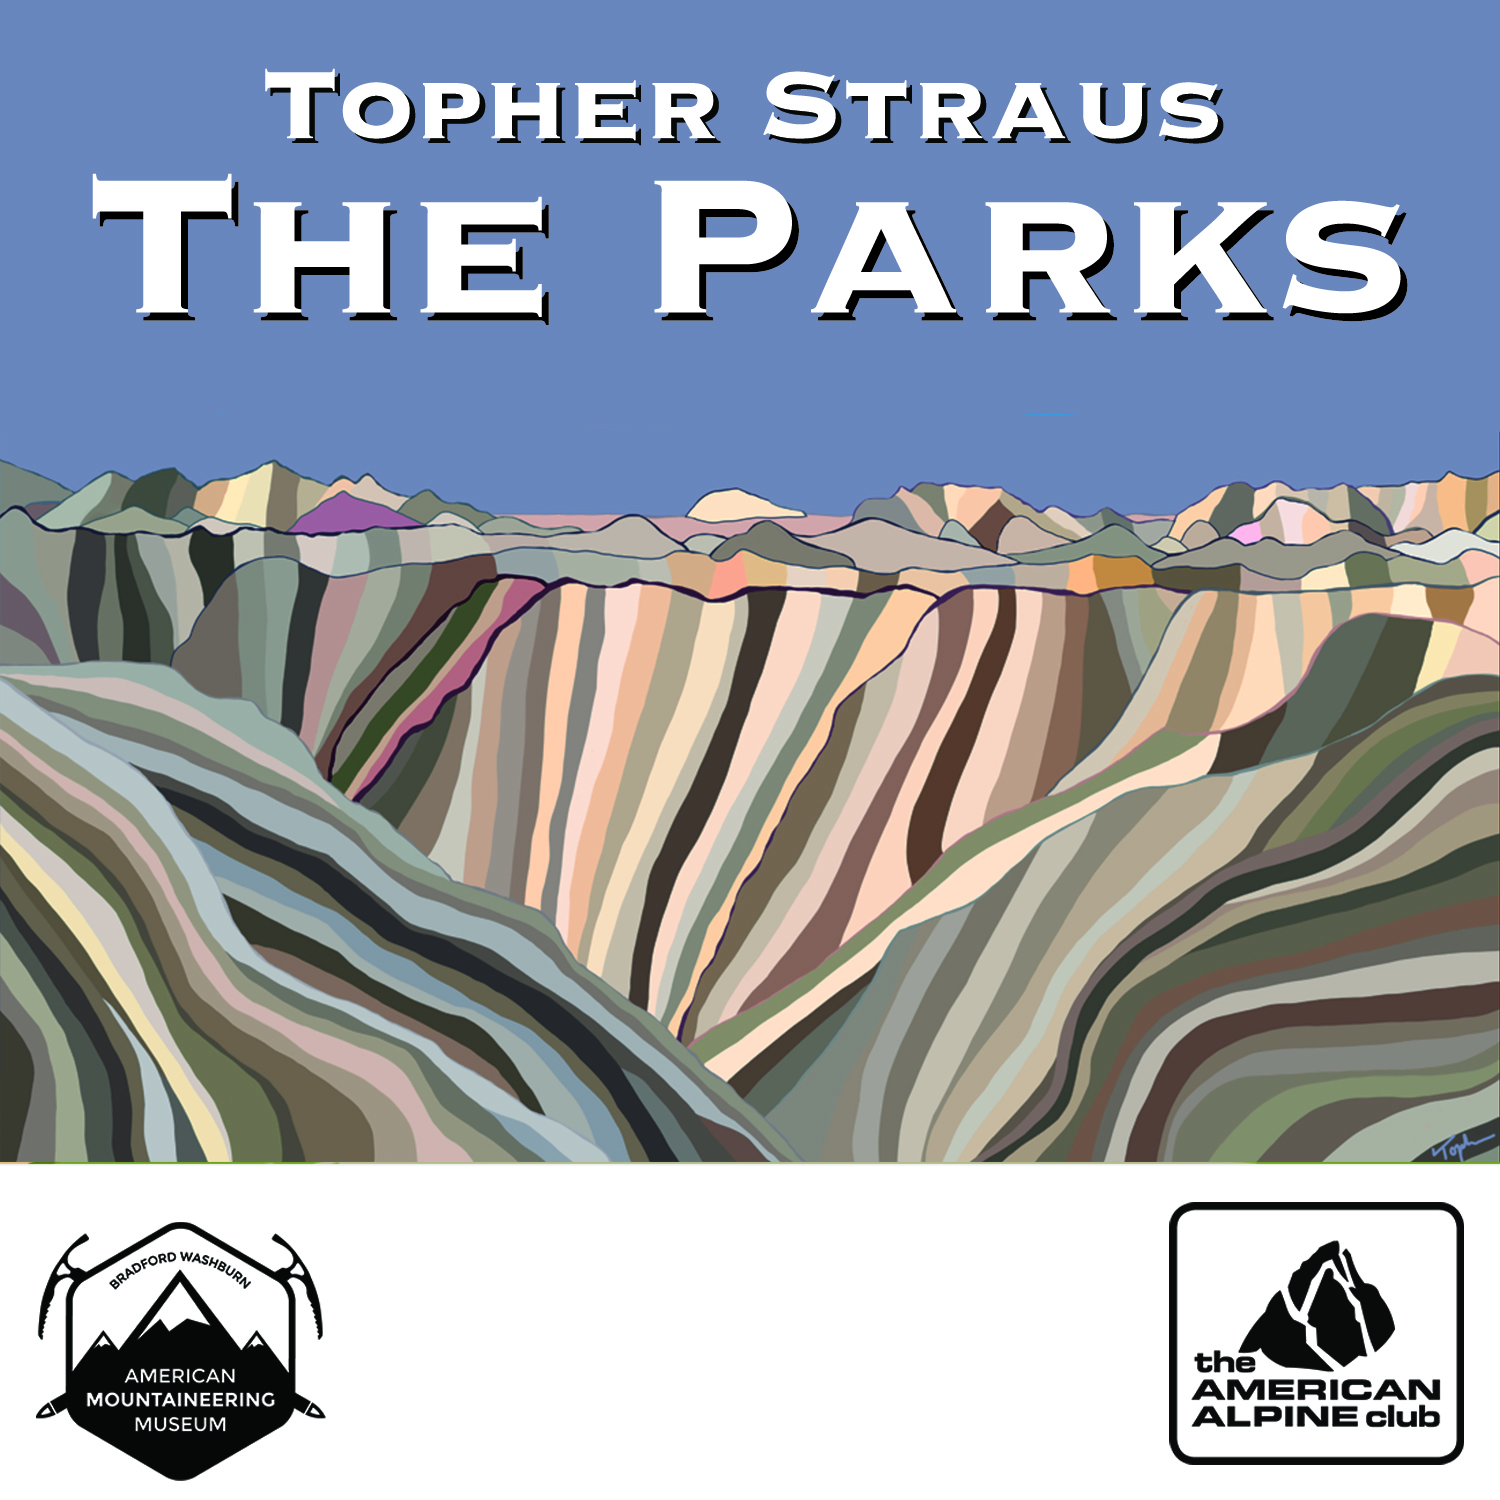 The_parks_TOPHER_STRAUS_AMERICAN_MOUNTAINEERING_MUSEUM.jpg